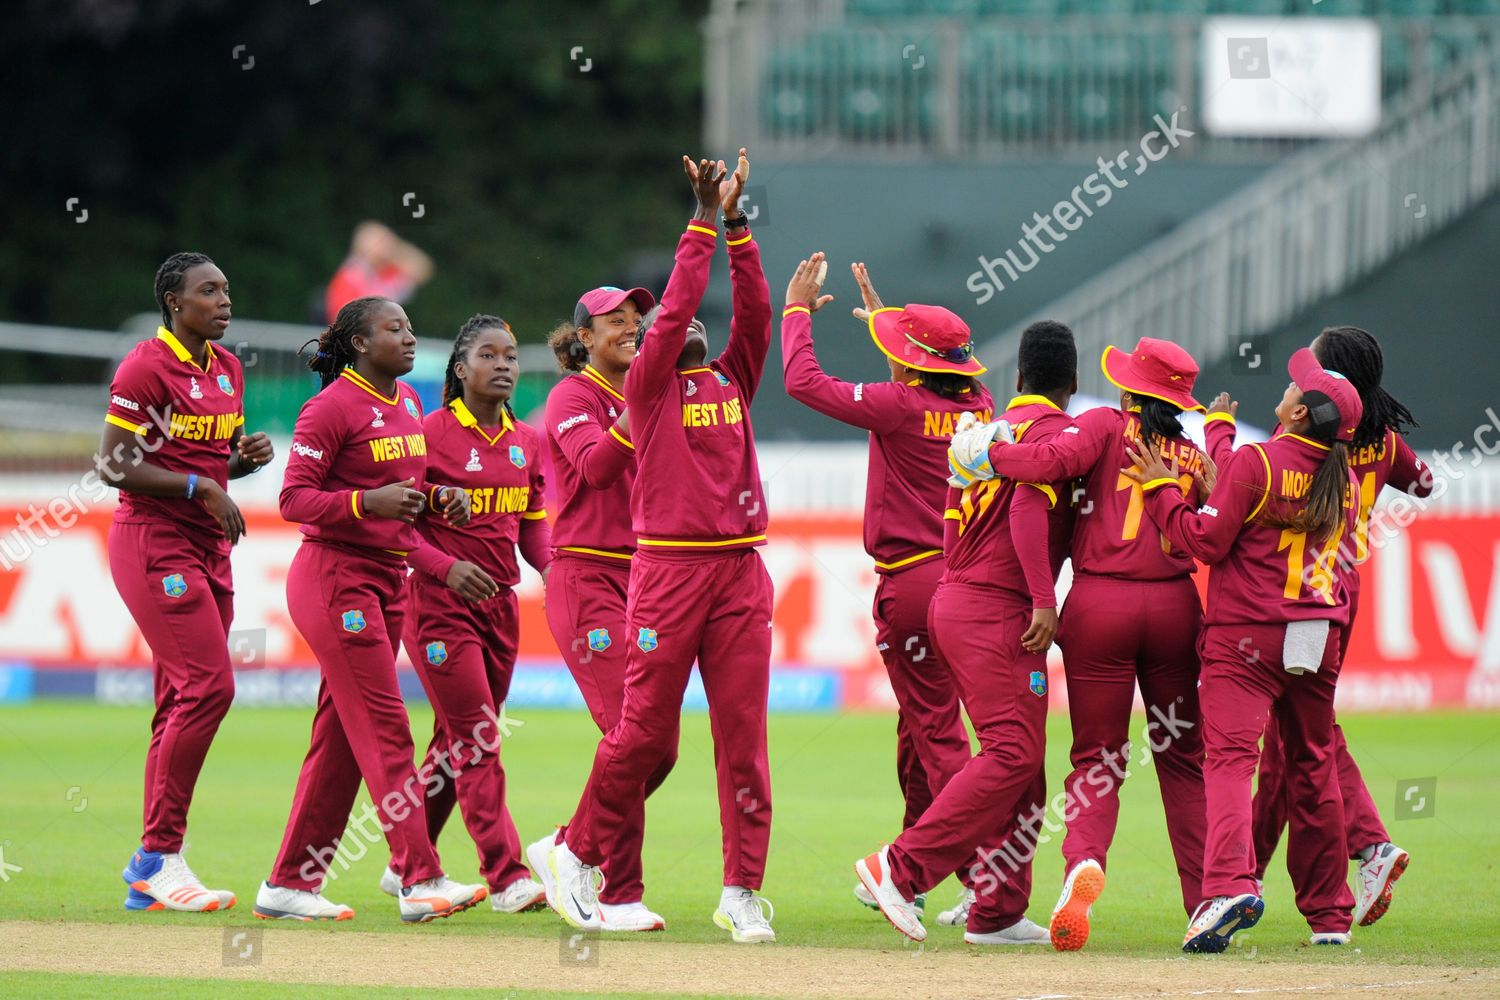 Wicket Shamilia Connell West Indies celebrates taking